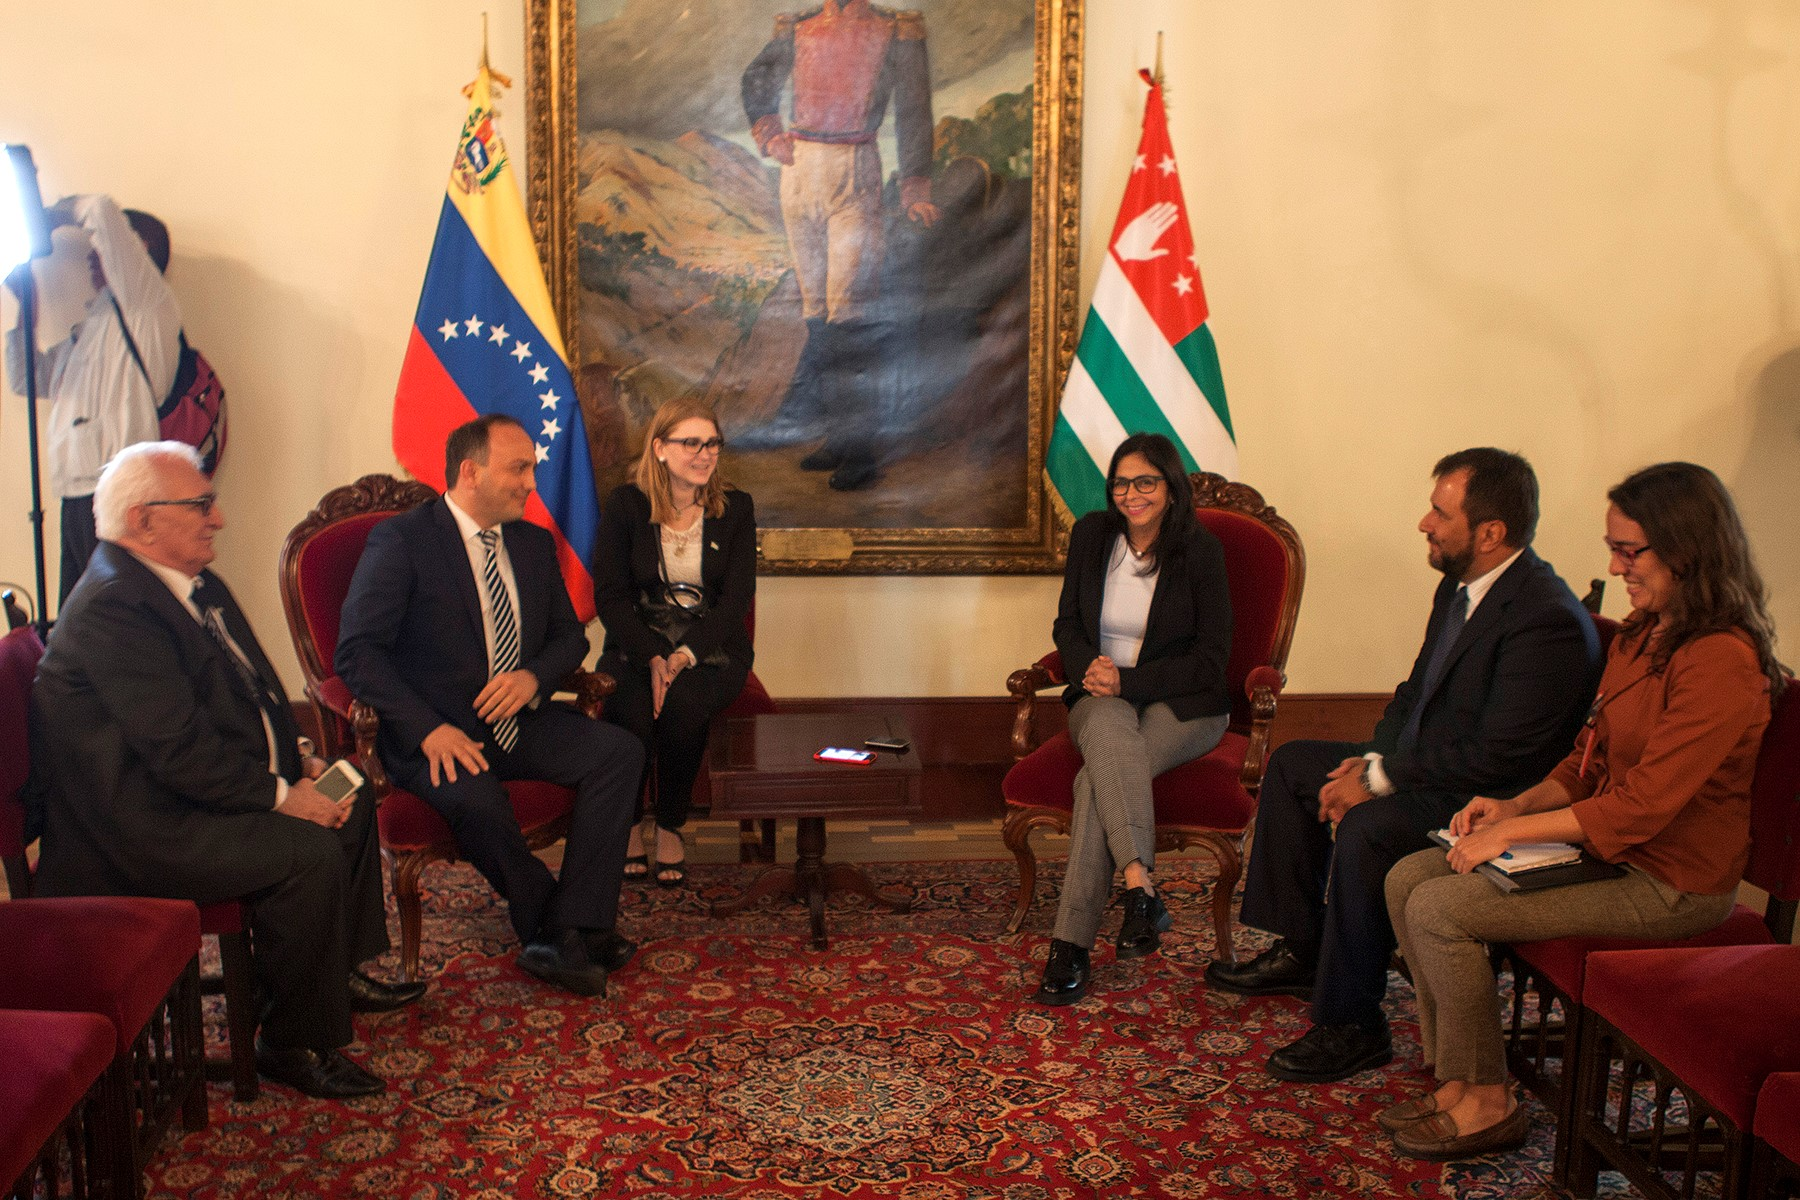 Visit of the delegation of the Republic of Abkhazia to the Bolivarian Republic of Venezuela